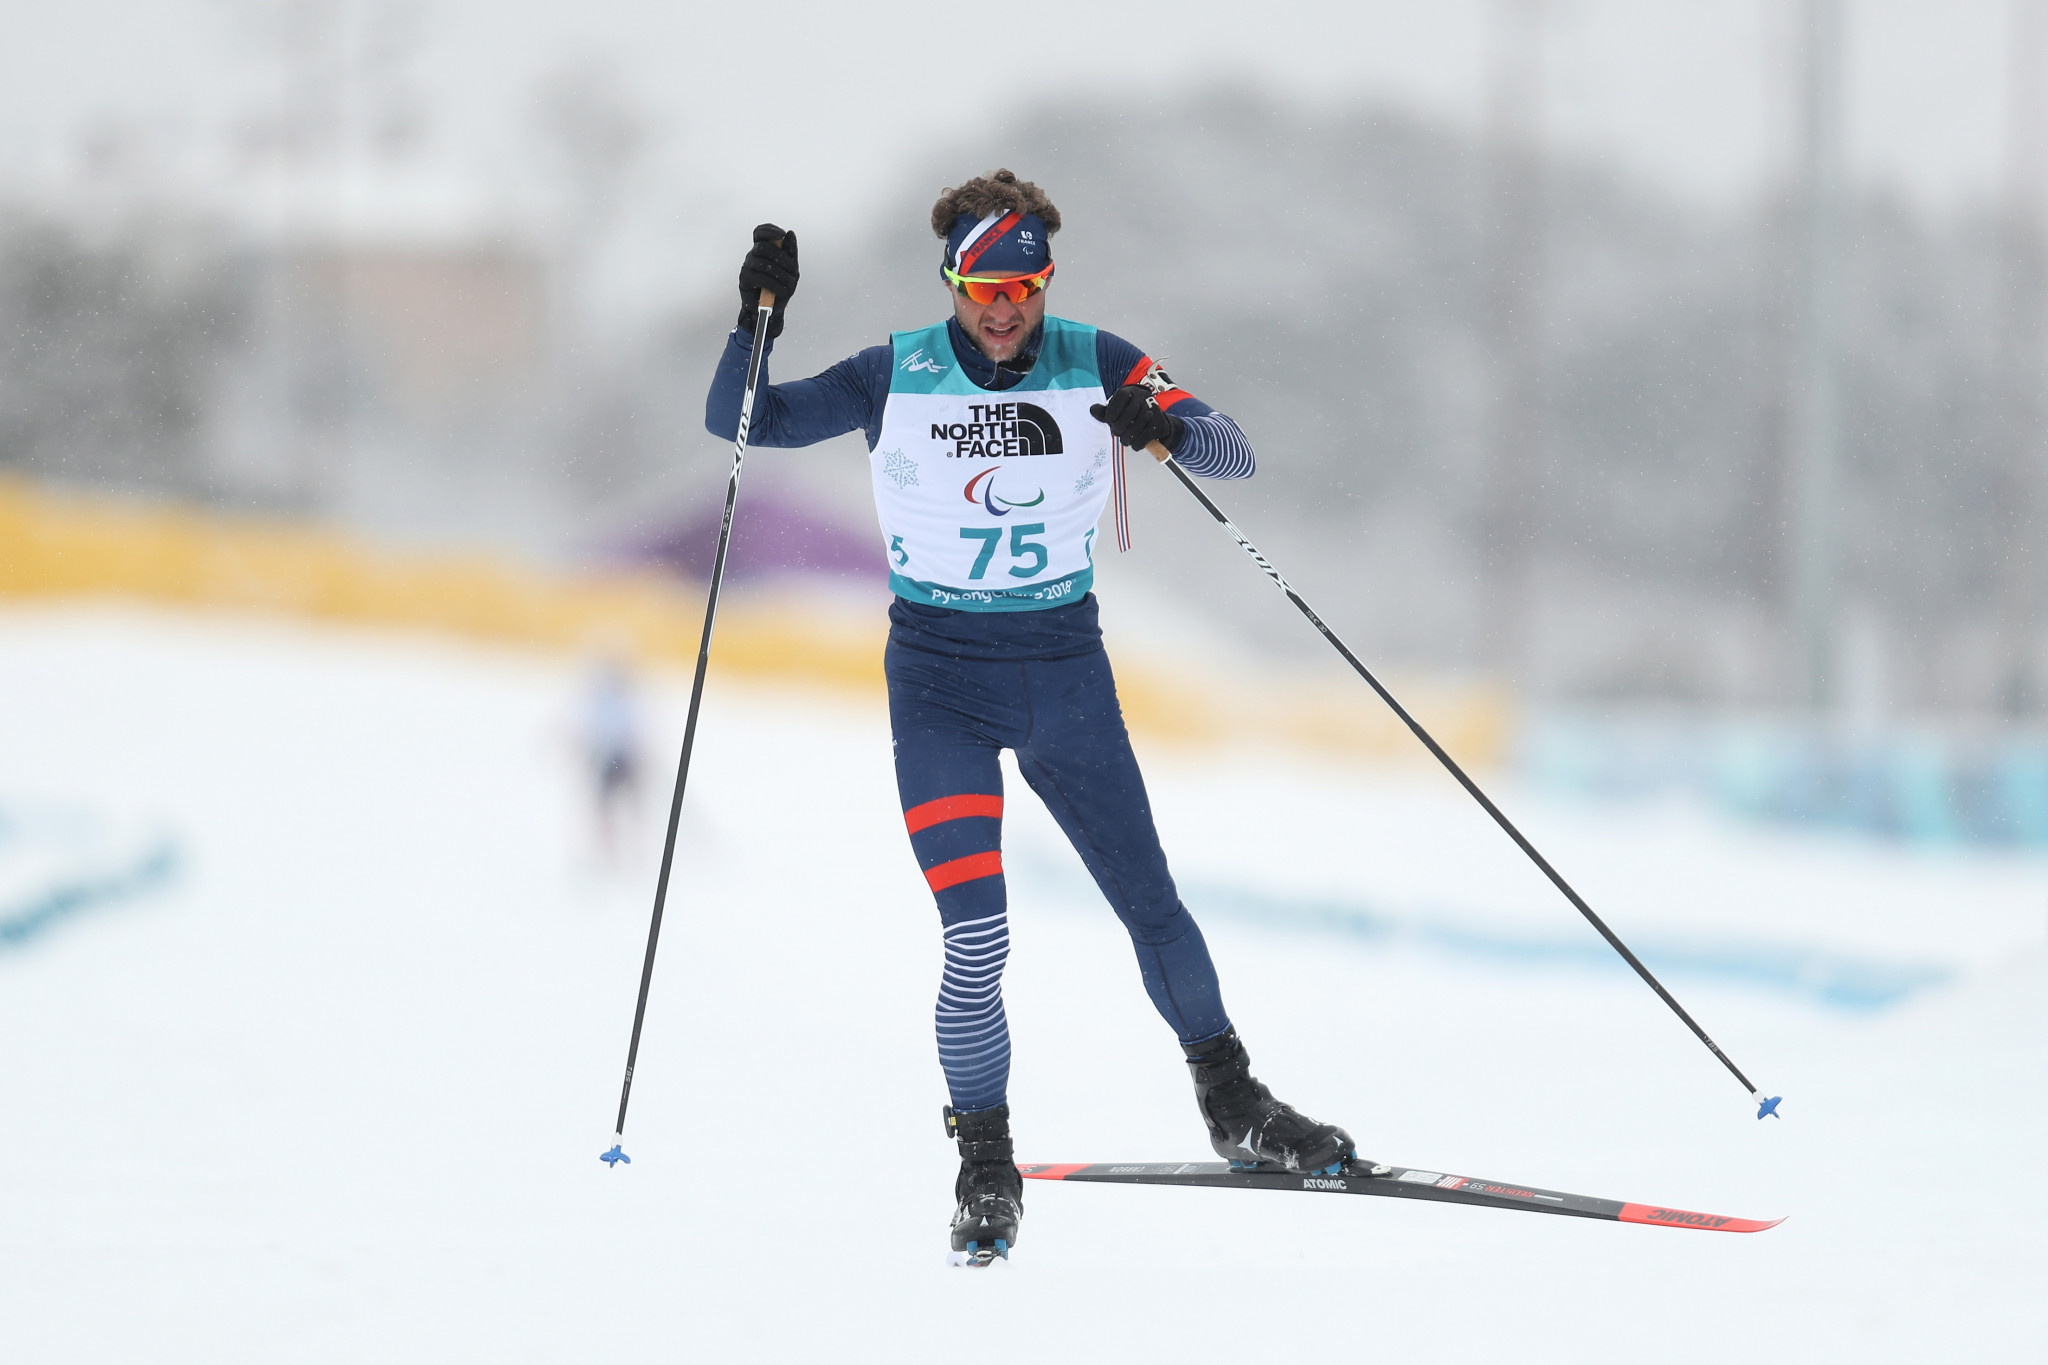 Paralympic champion Daviet claims first gold in new biathlon format